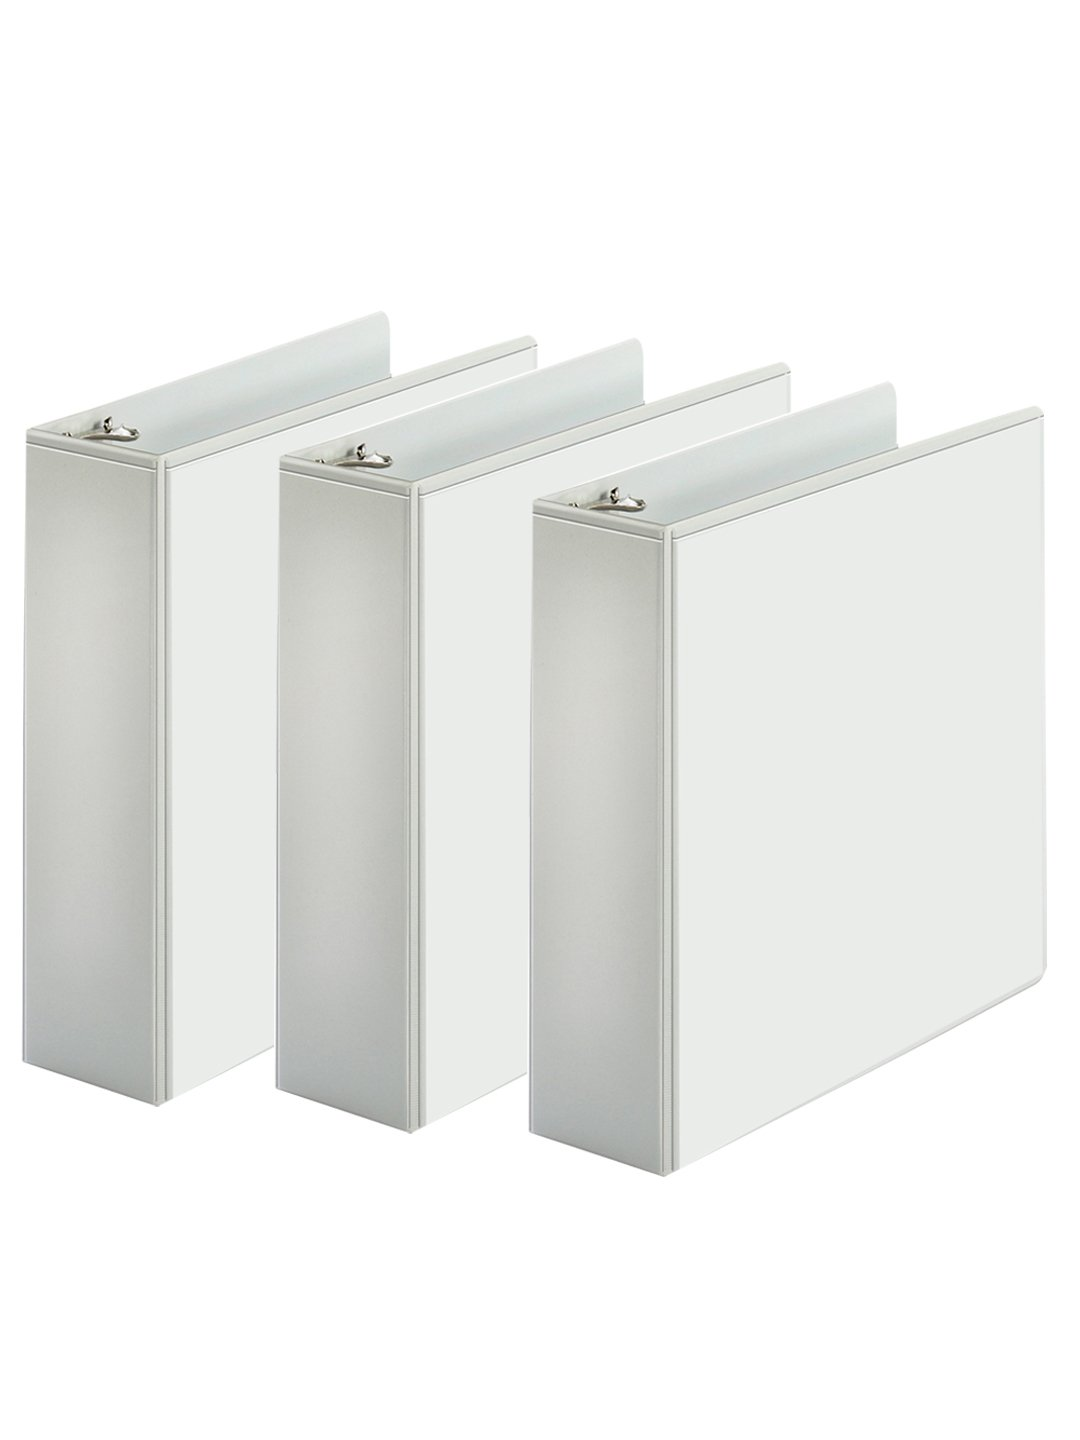 3-Ring Binder, Presentation View Binders - 2 Interior Pockets - Easily organize projects, presentations, and more - Clear Front For Easy Customization - Holds 625 Sheets - 3-Pack (3-Inch, White)